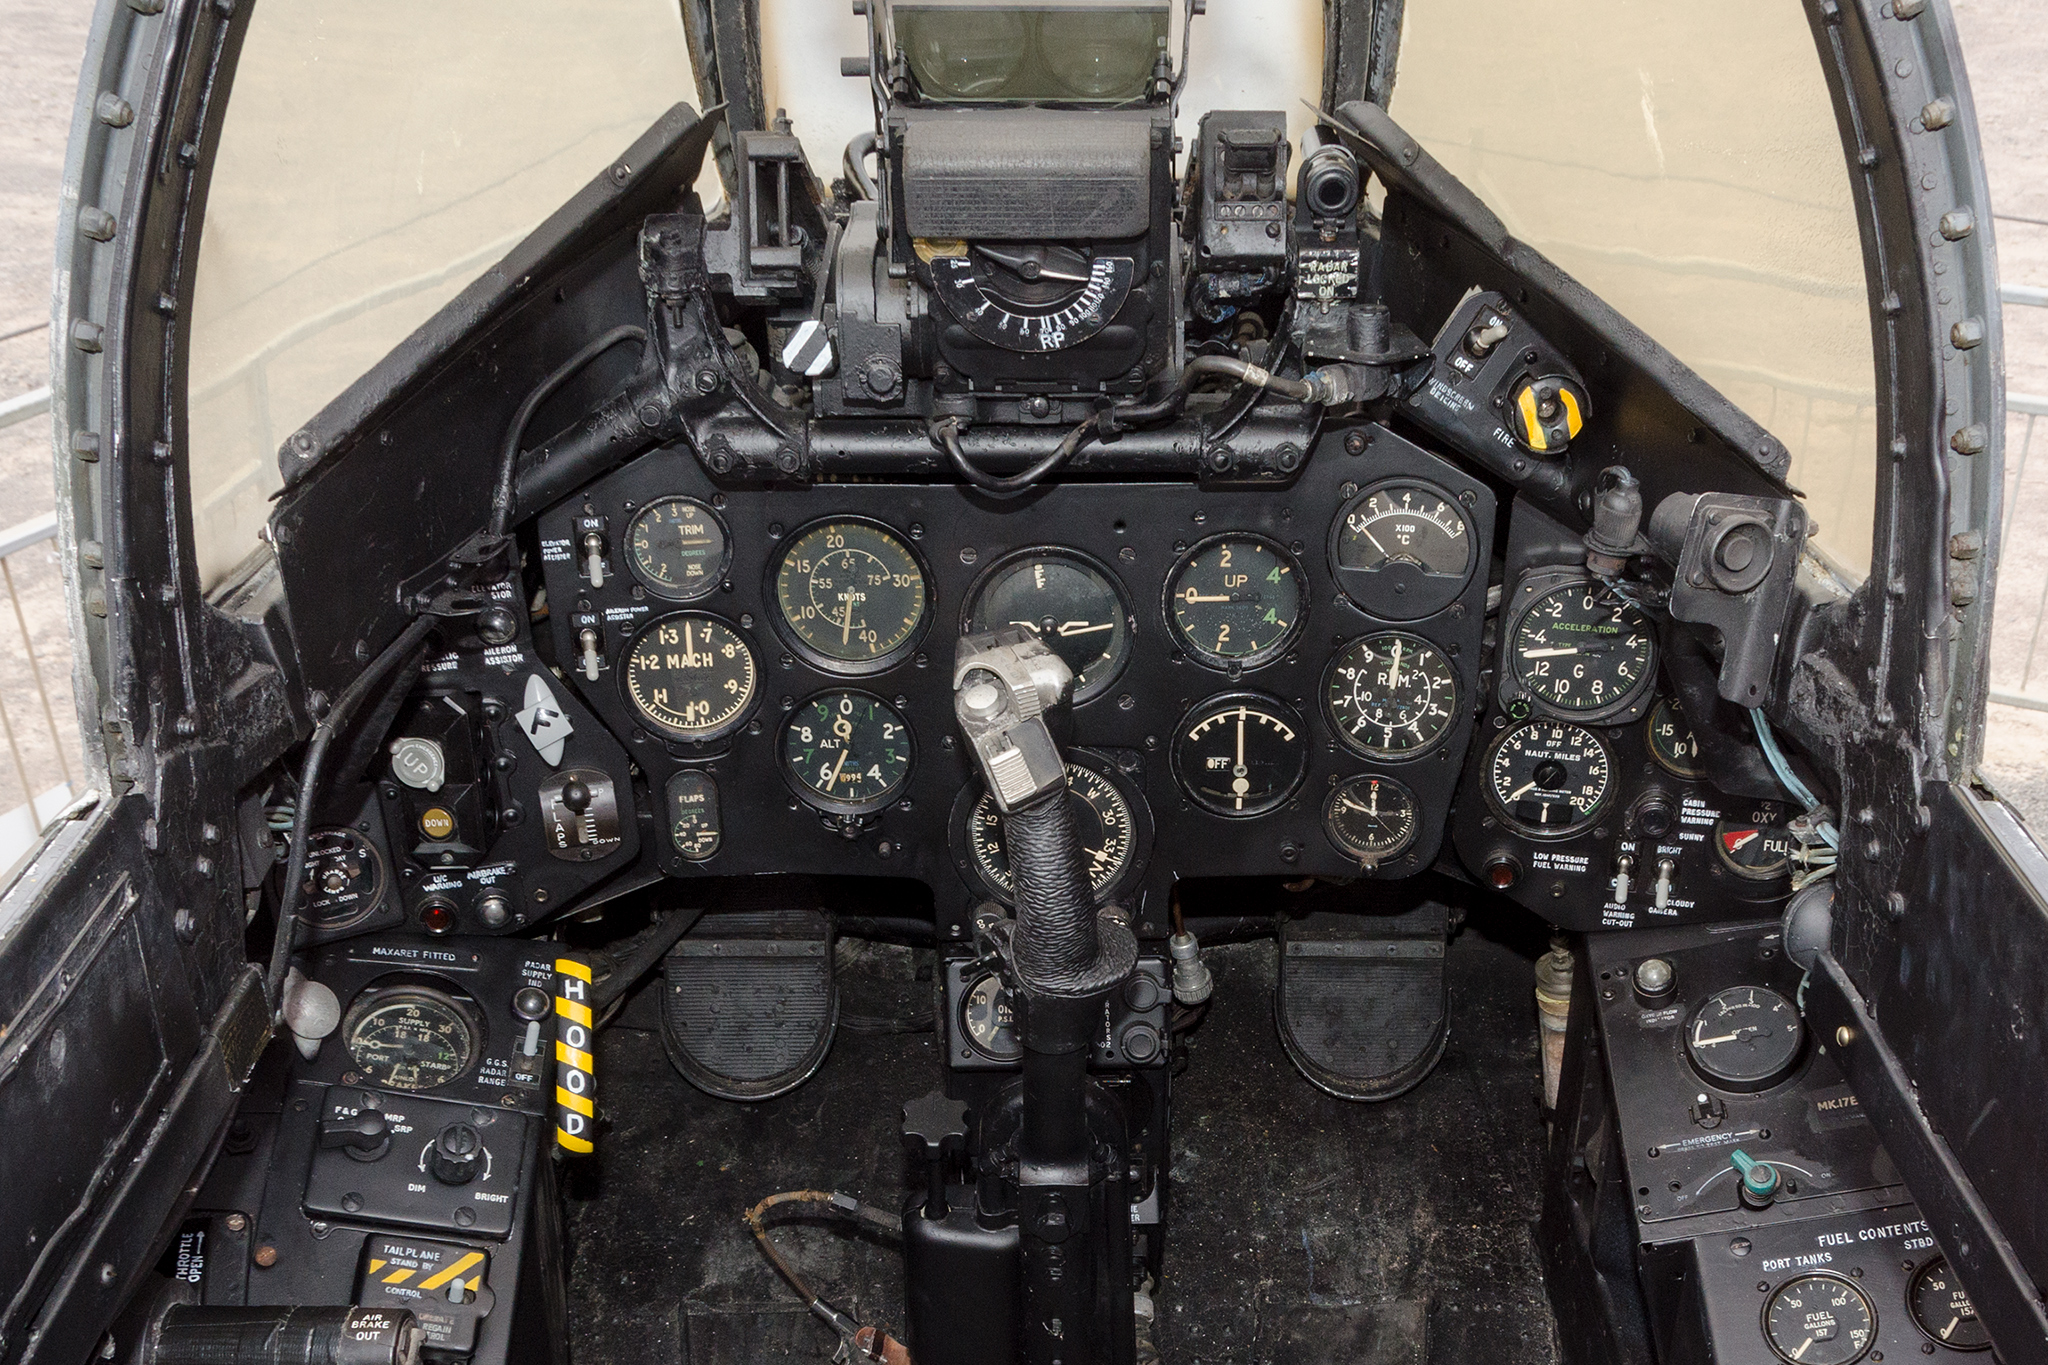 Hunter cockpit